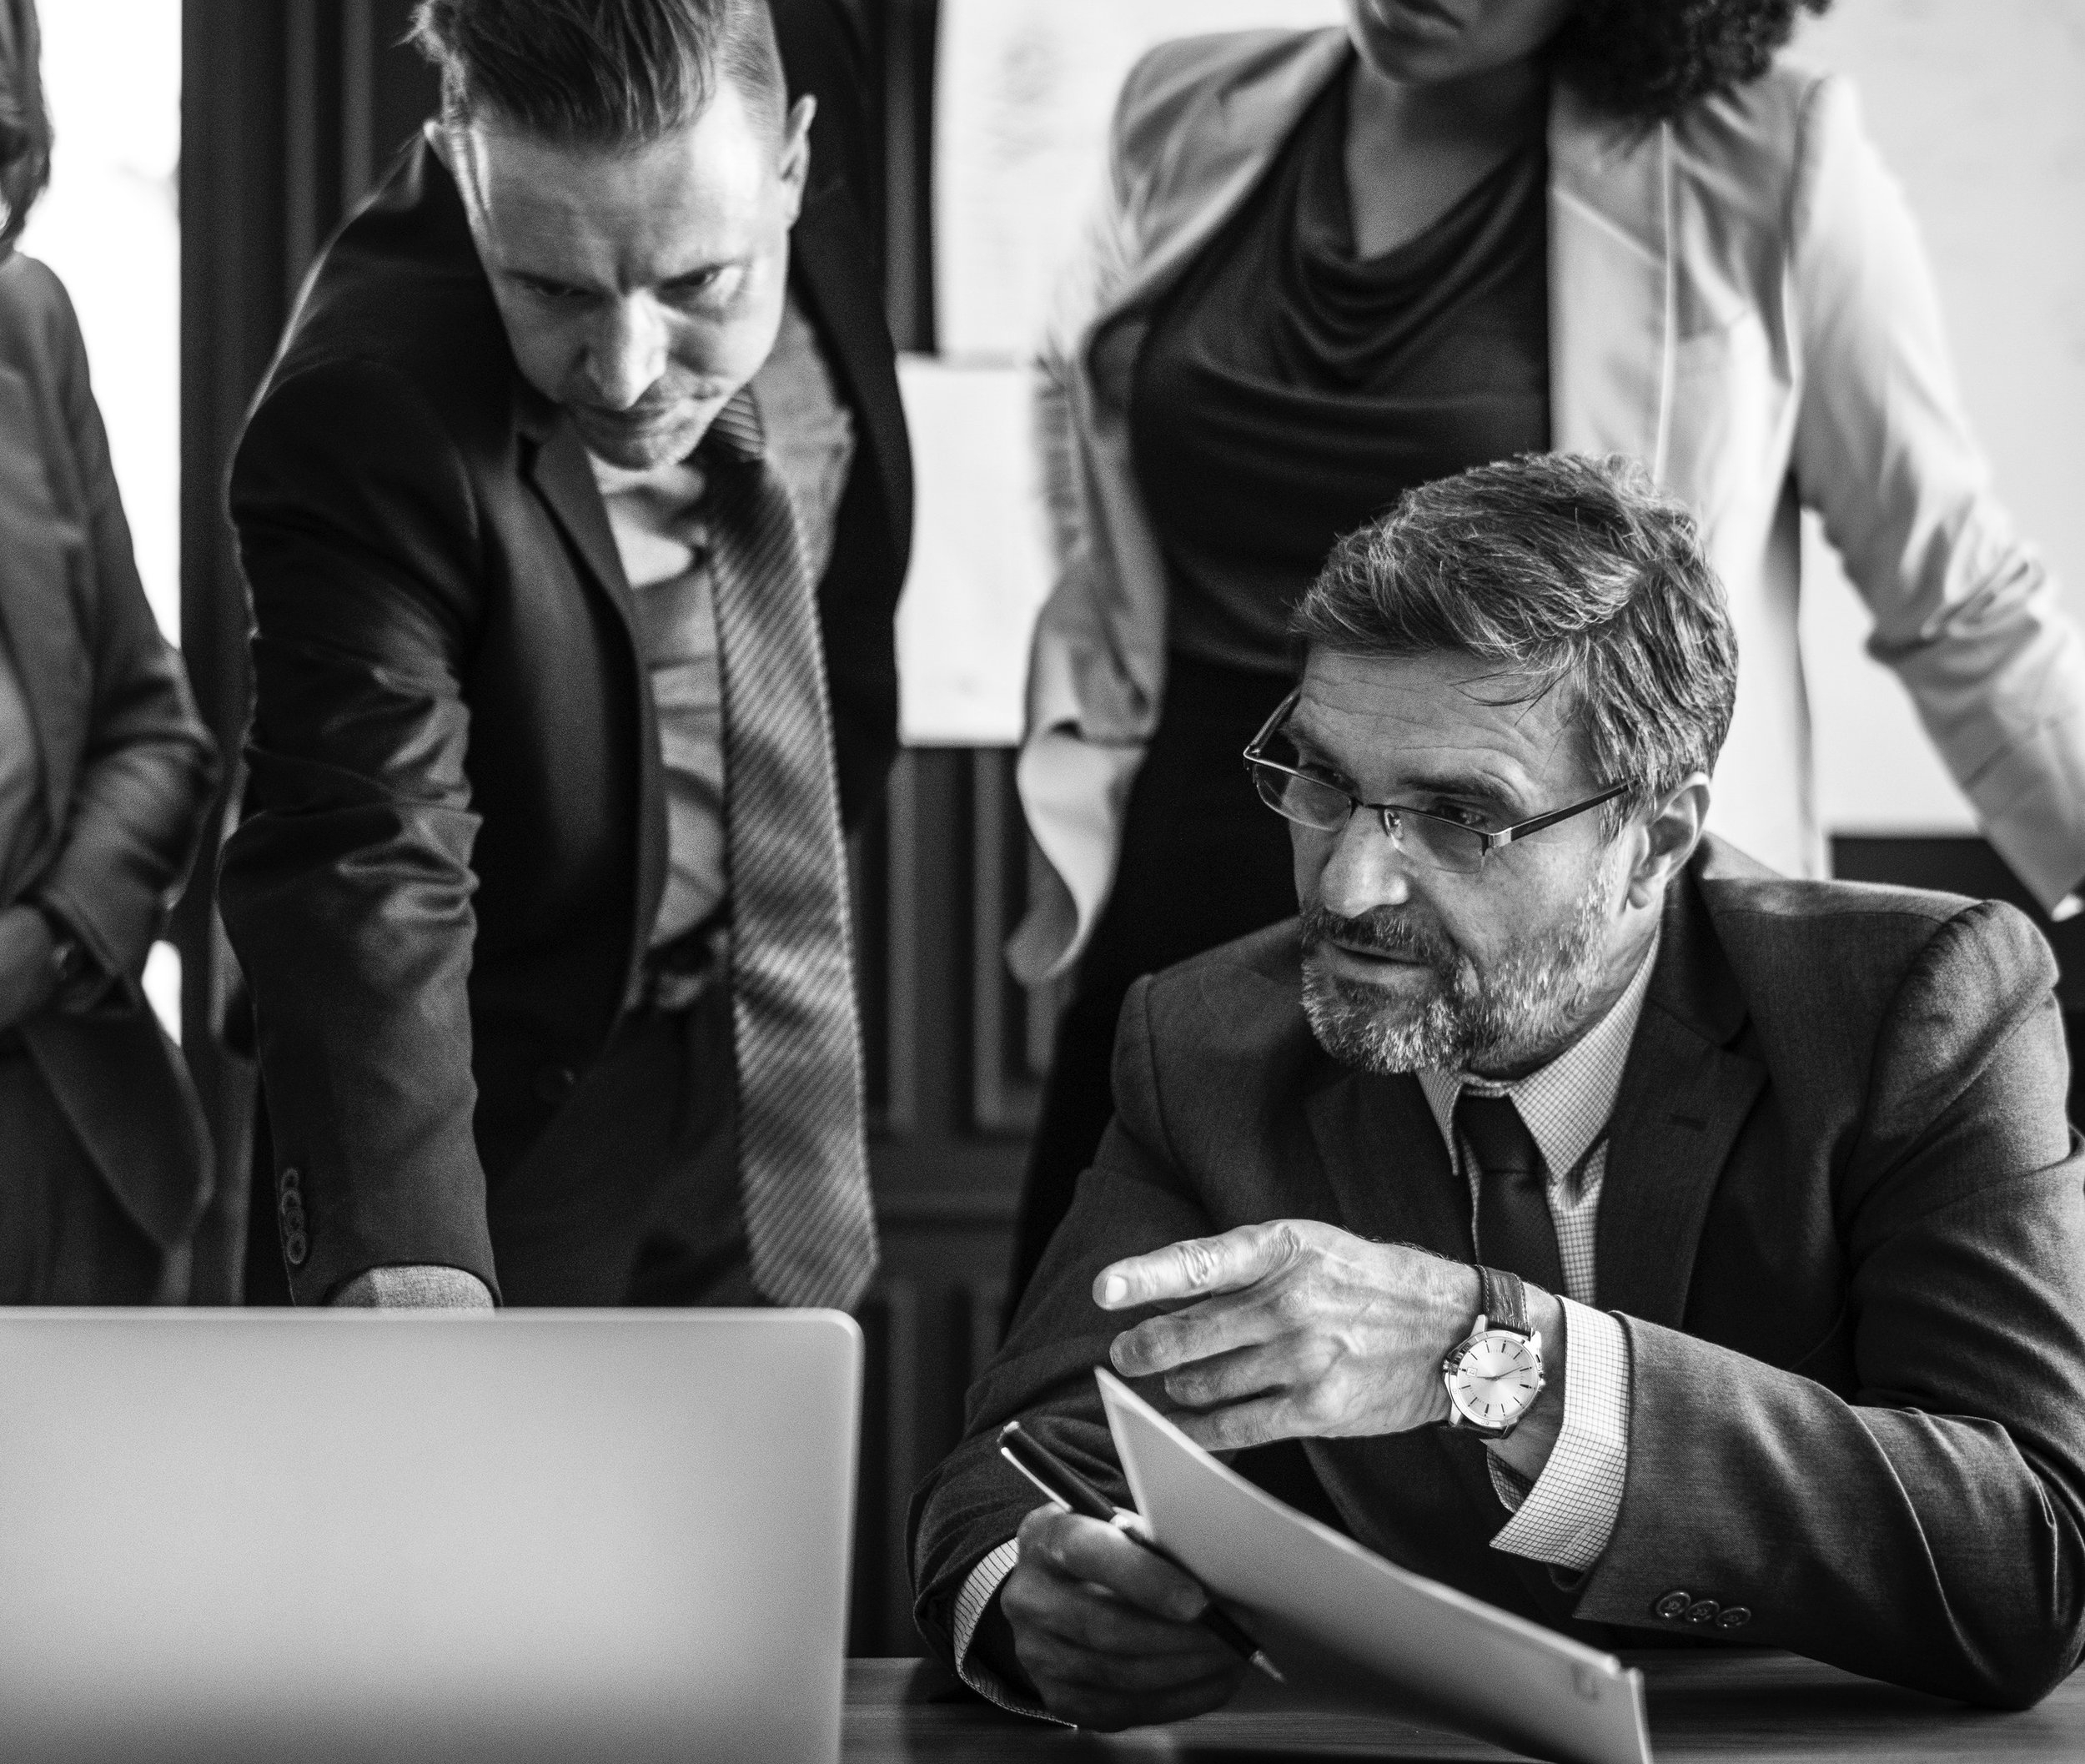 Portfolio litigation financing is growing and can help your firm to find new clients, develop existing business, and free up capital for your law firm's operations. -